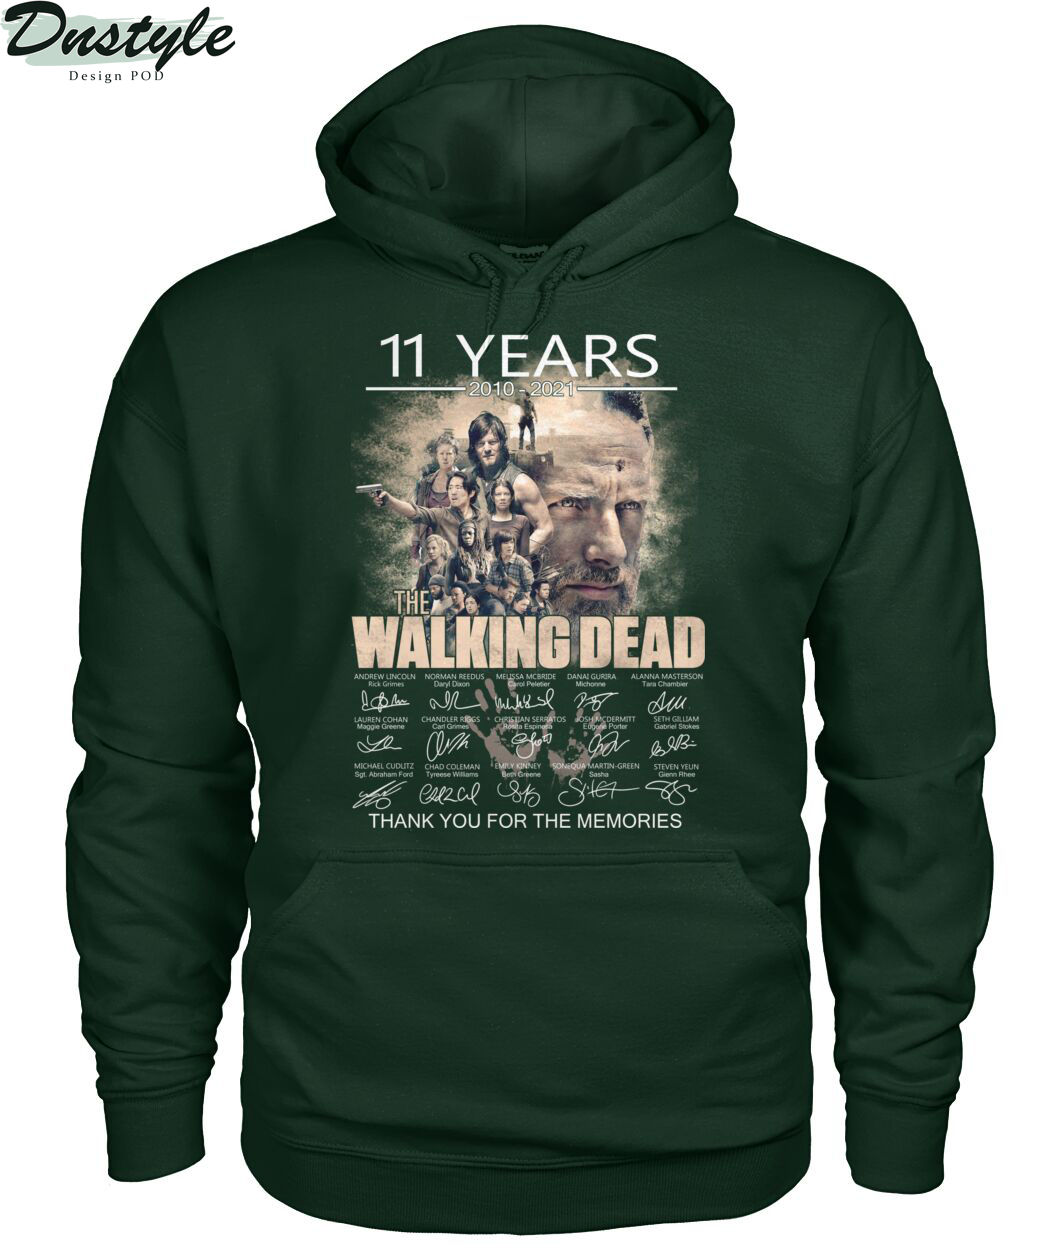 The walking dead 11 years 2010-2021 thank you for the memories hoodie